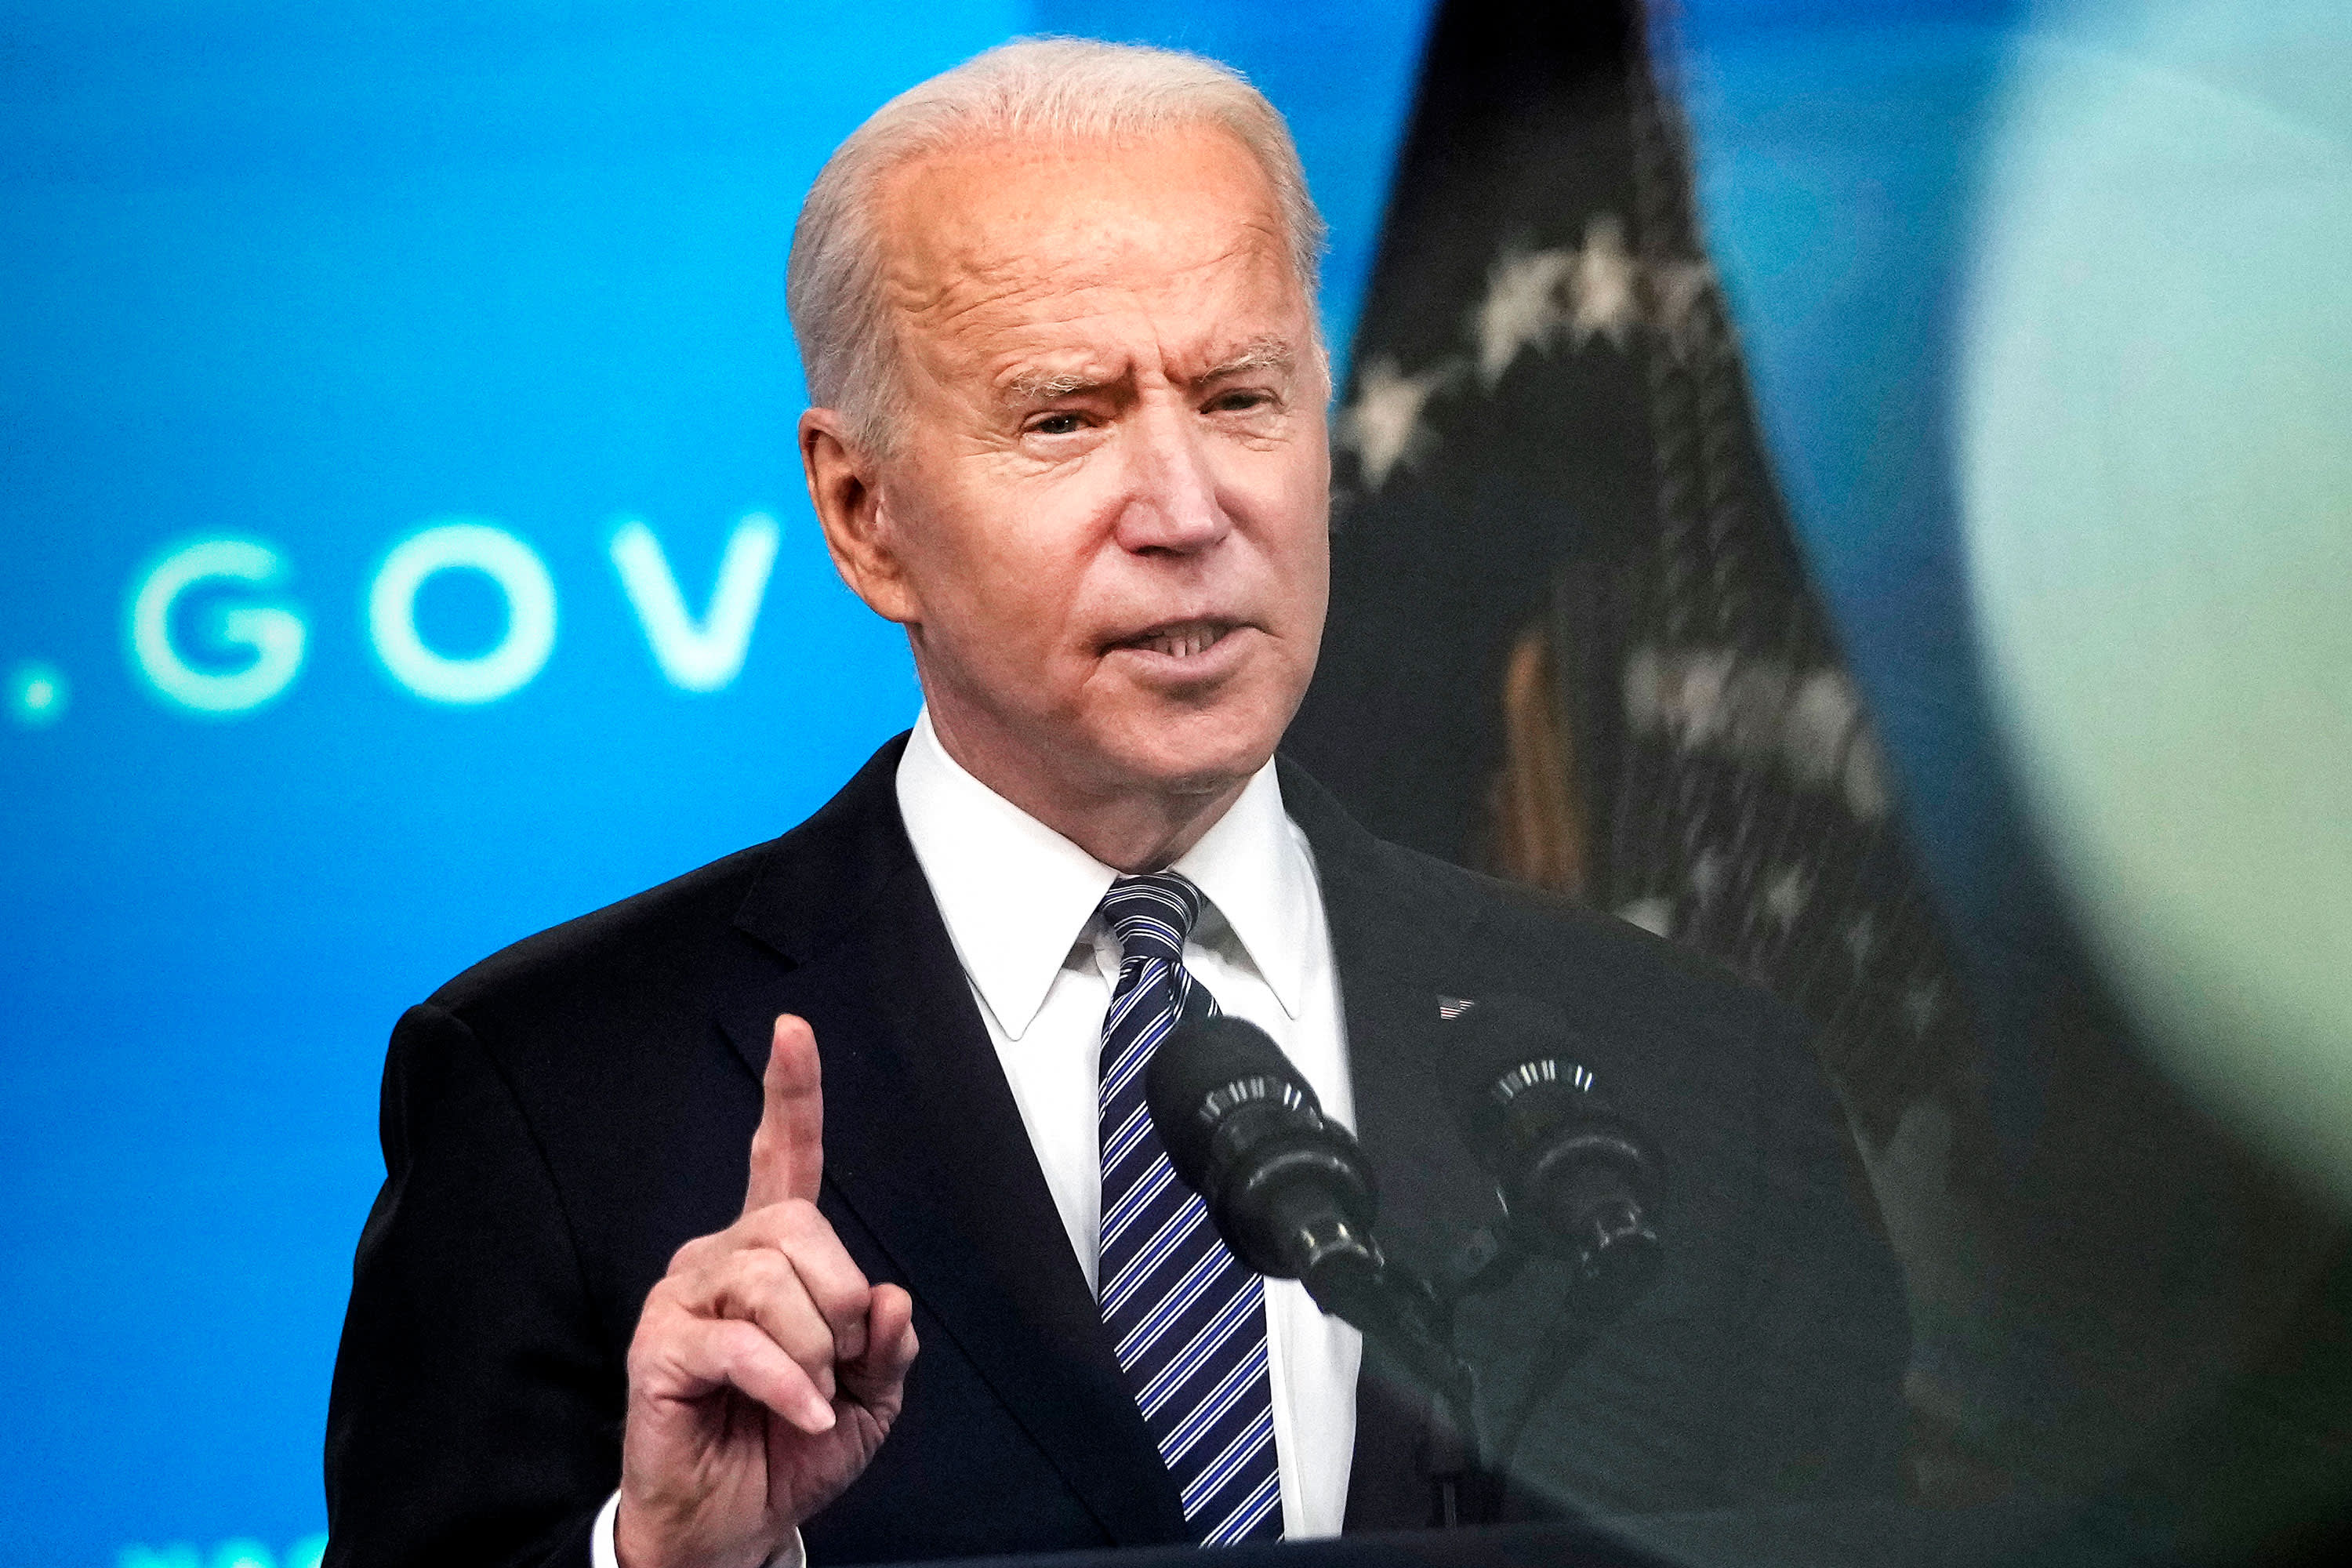 Biden signs executive order to strengthen cybersecurity after colonial pipeline hack